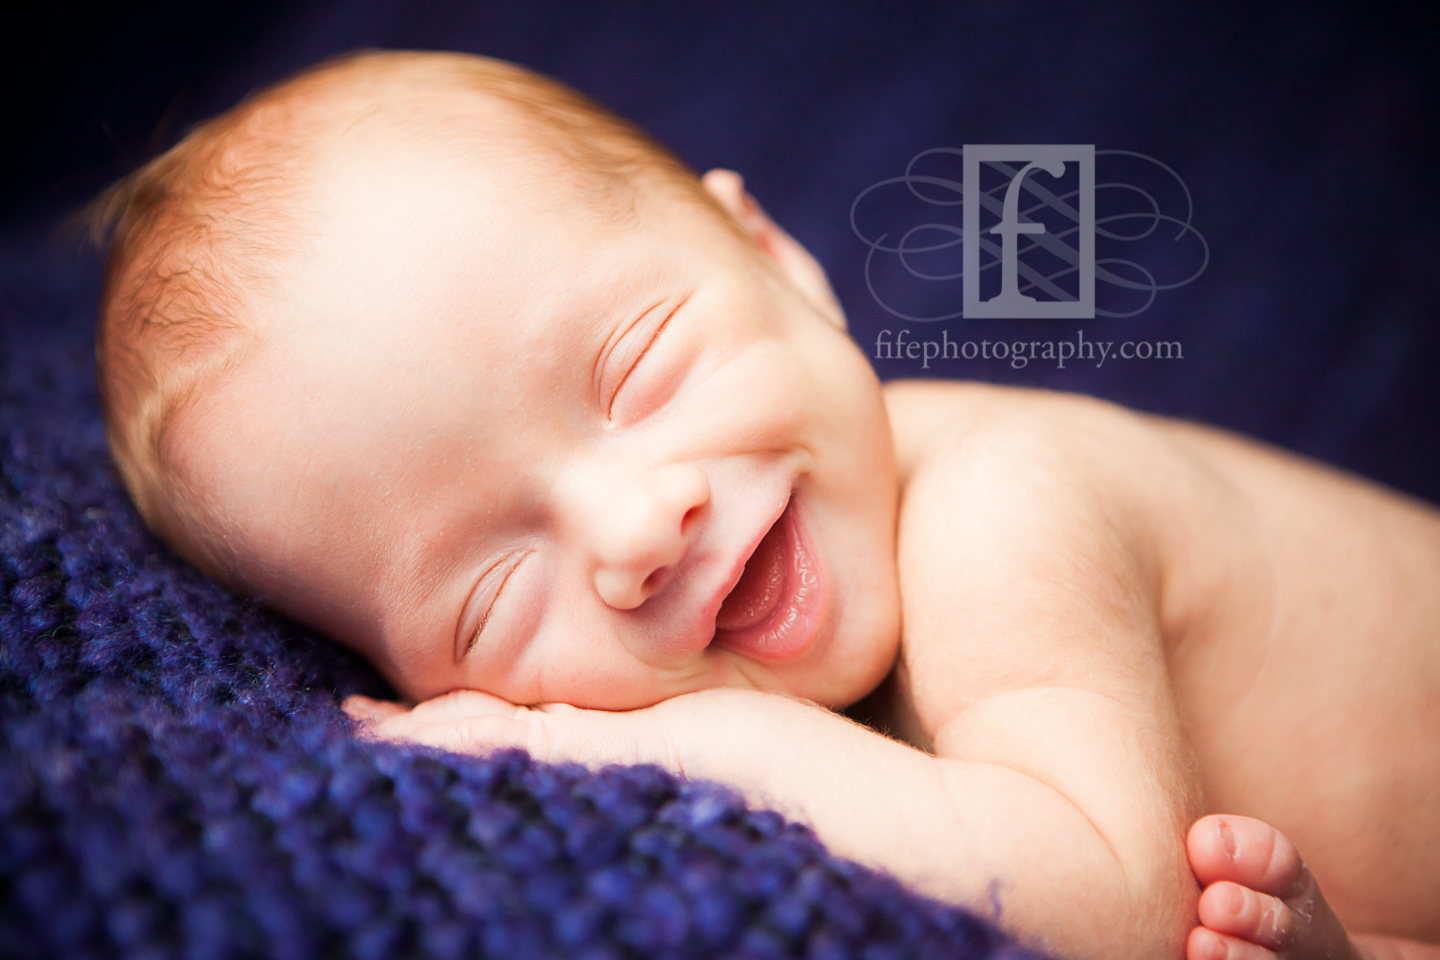 newborn baby smiling on blue blanket